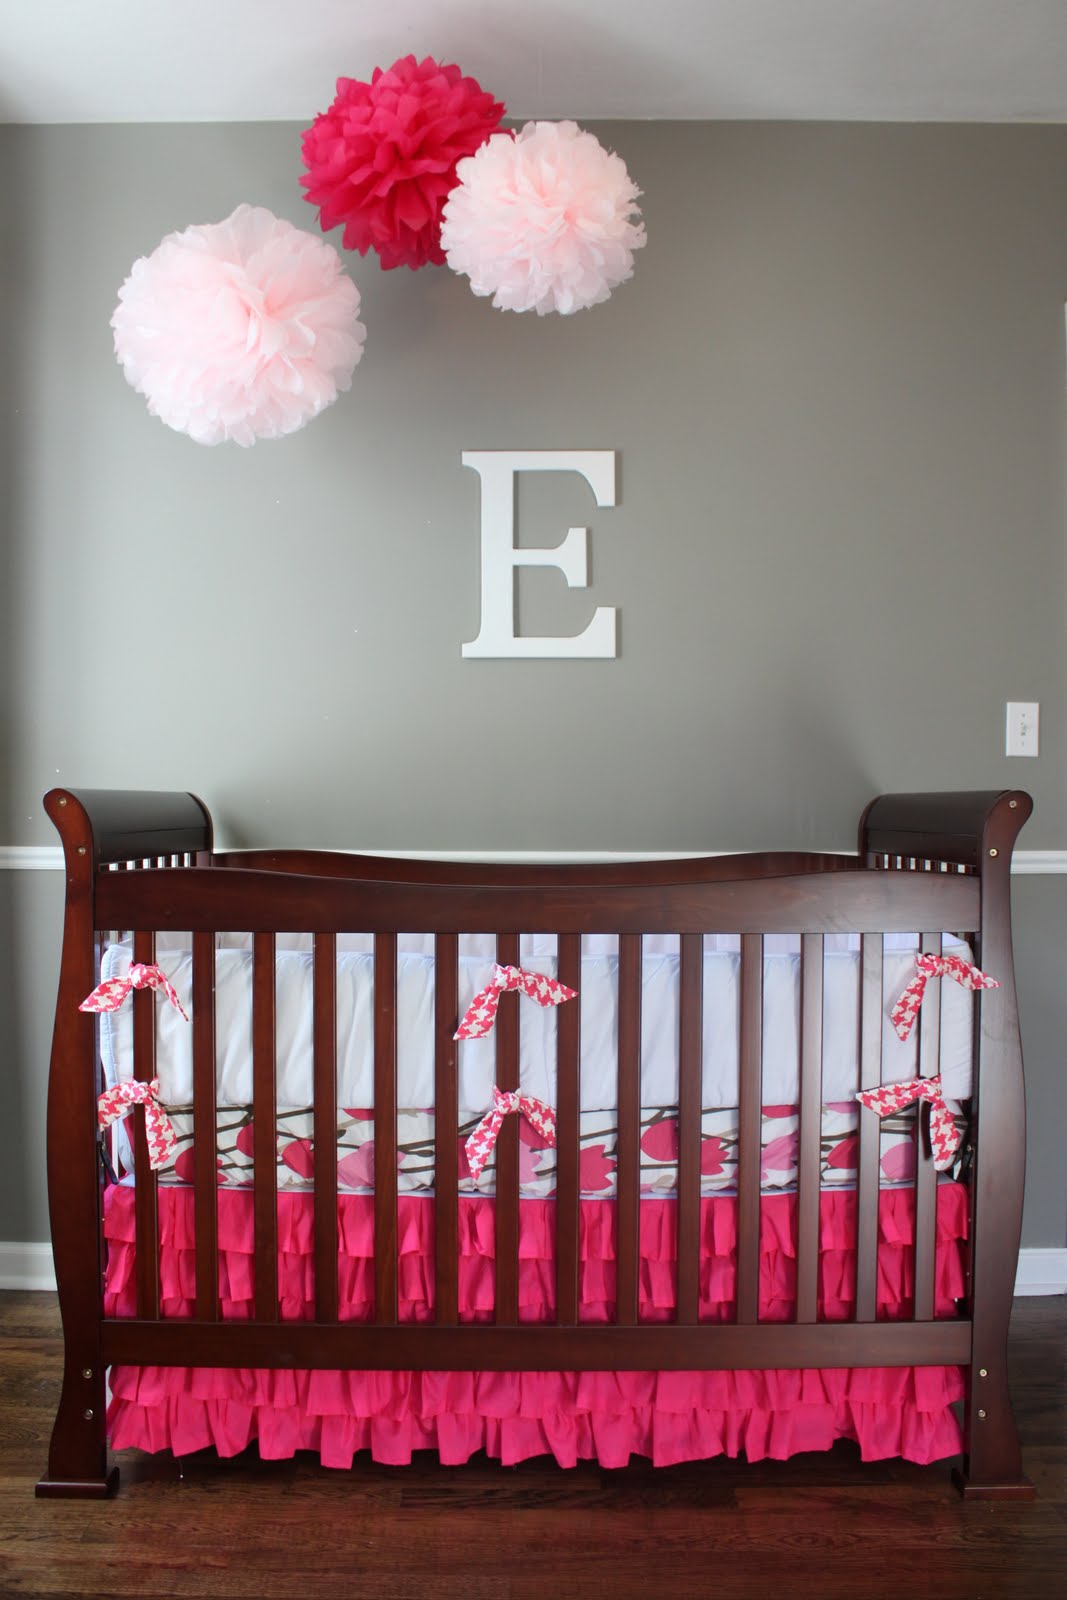 Simple sage designs check this out baby girl nursery Baby room themes for girl